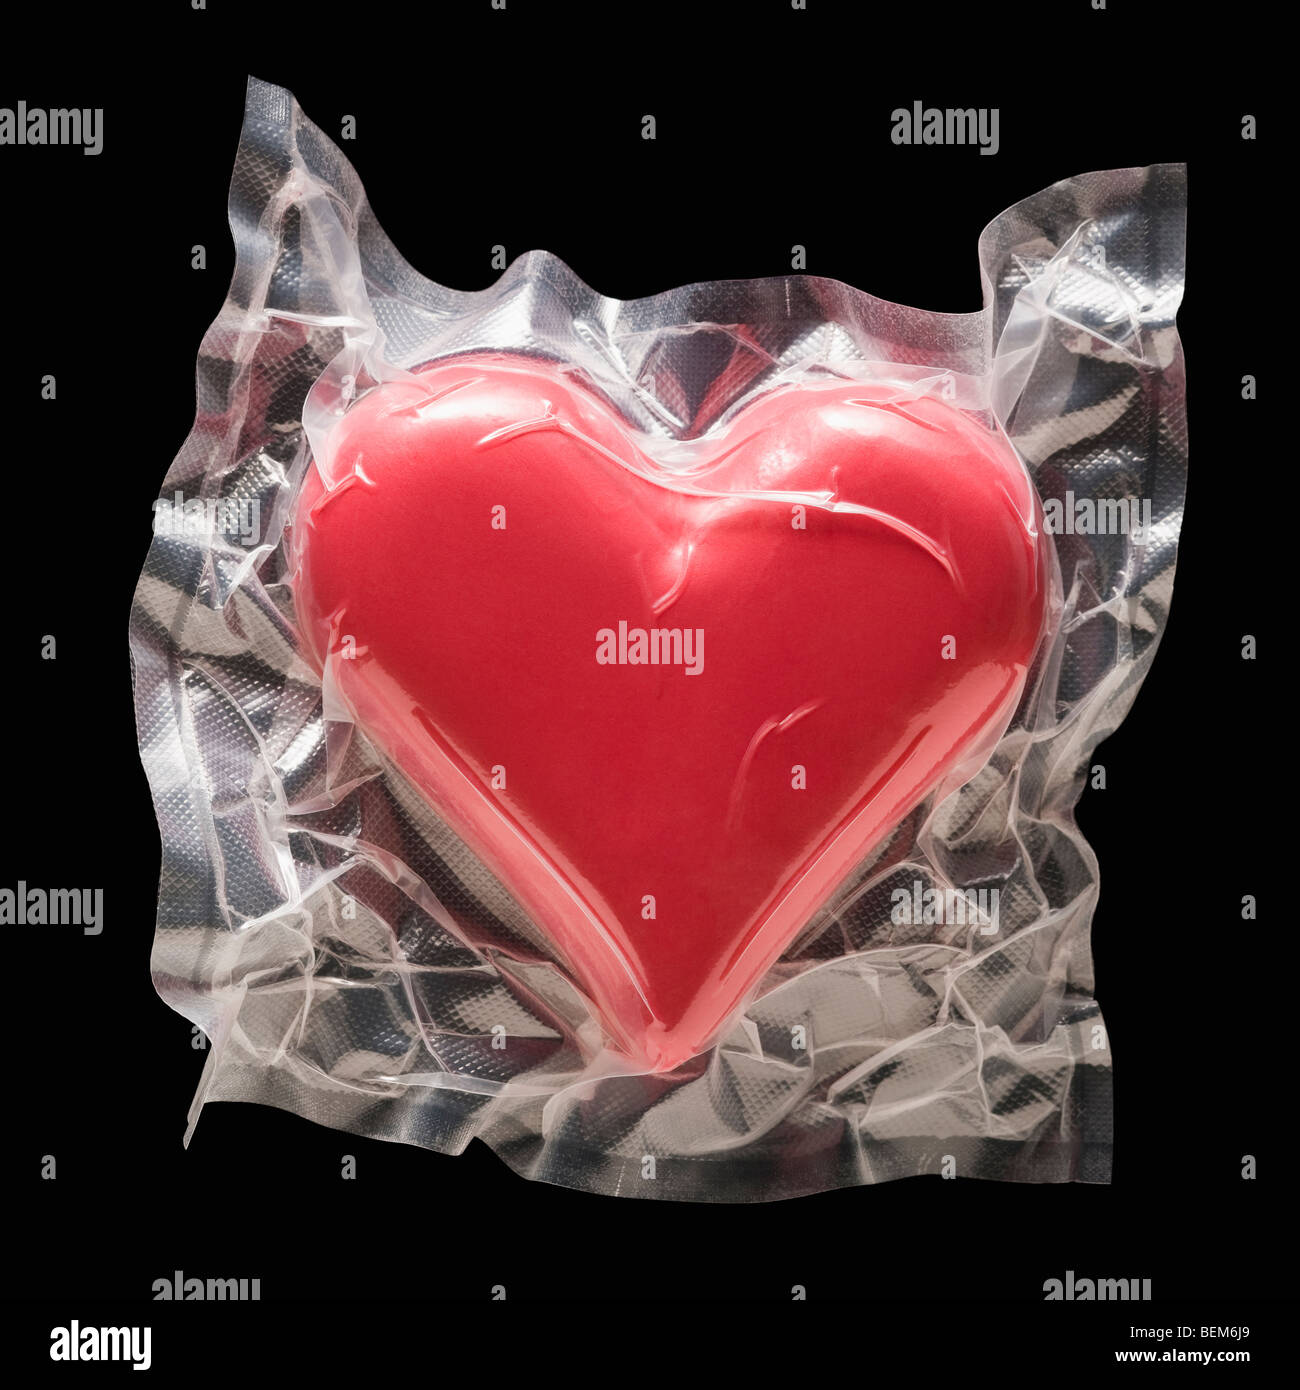 Shrink wrapped heart - Stock Image